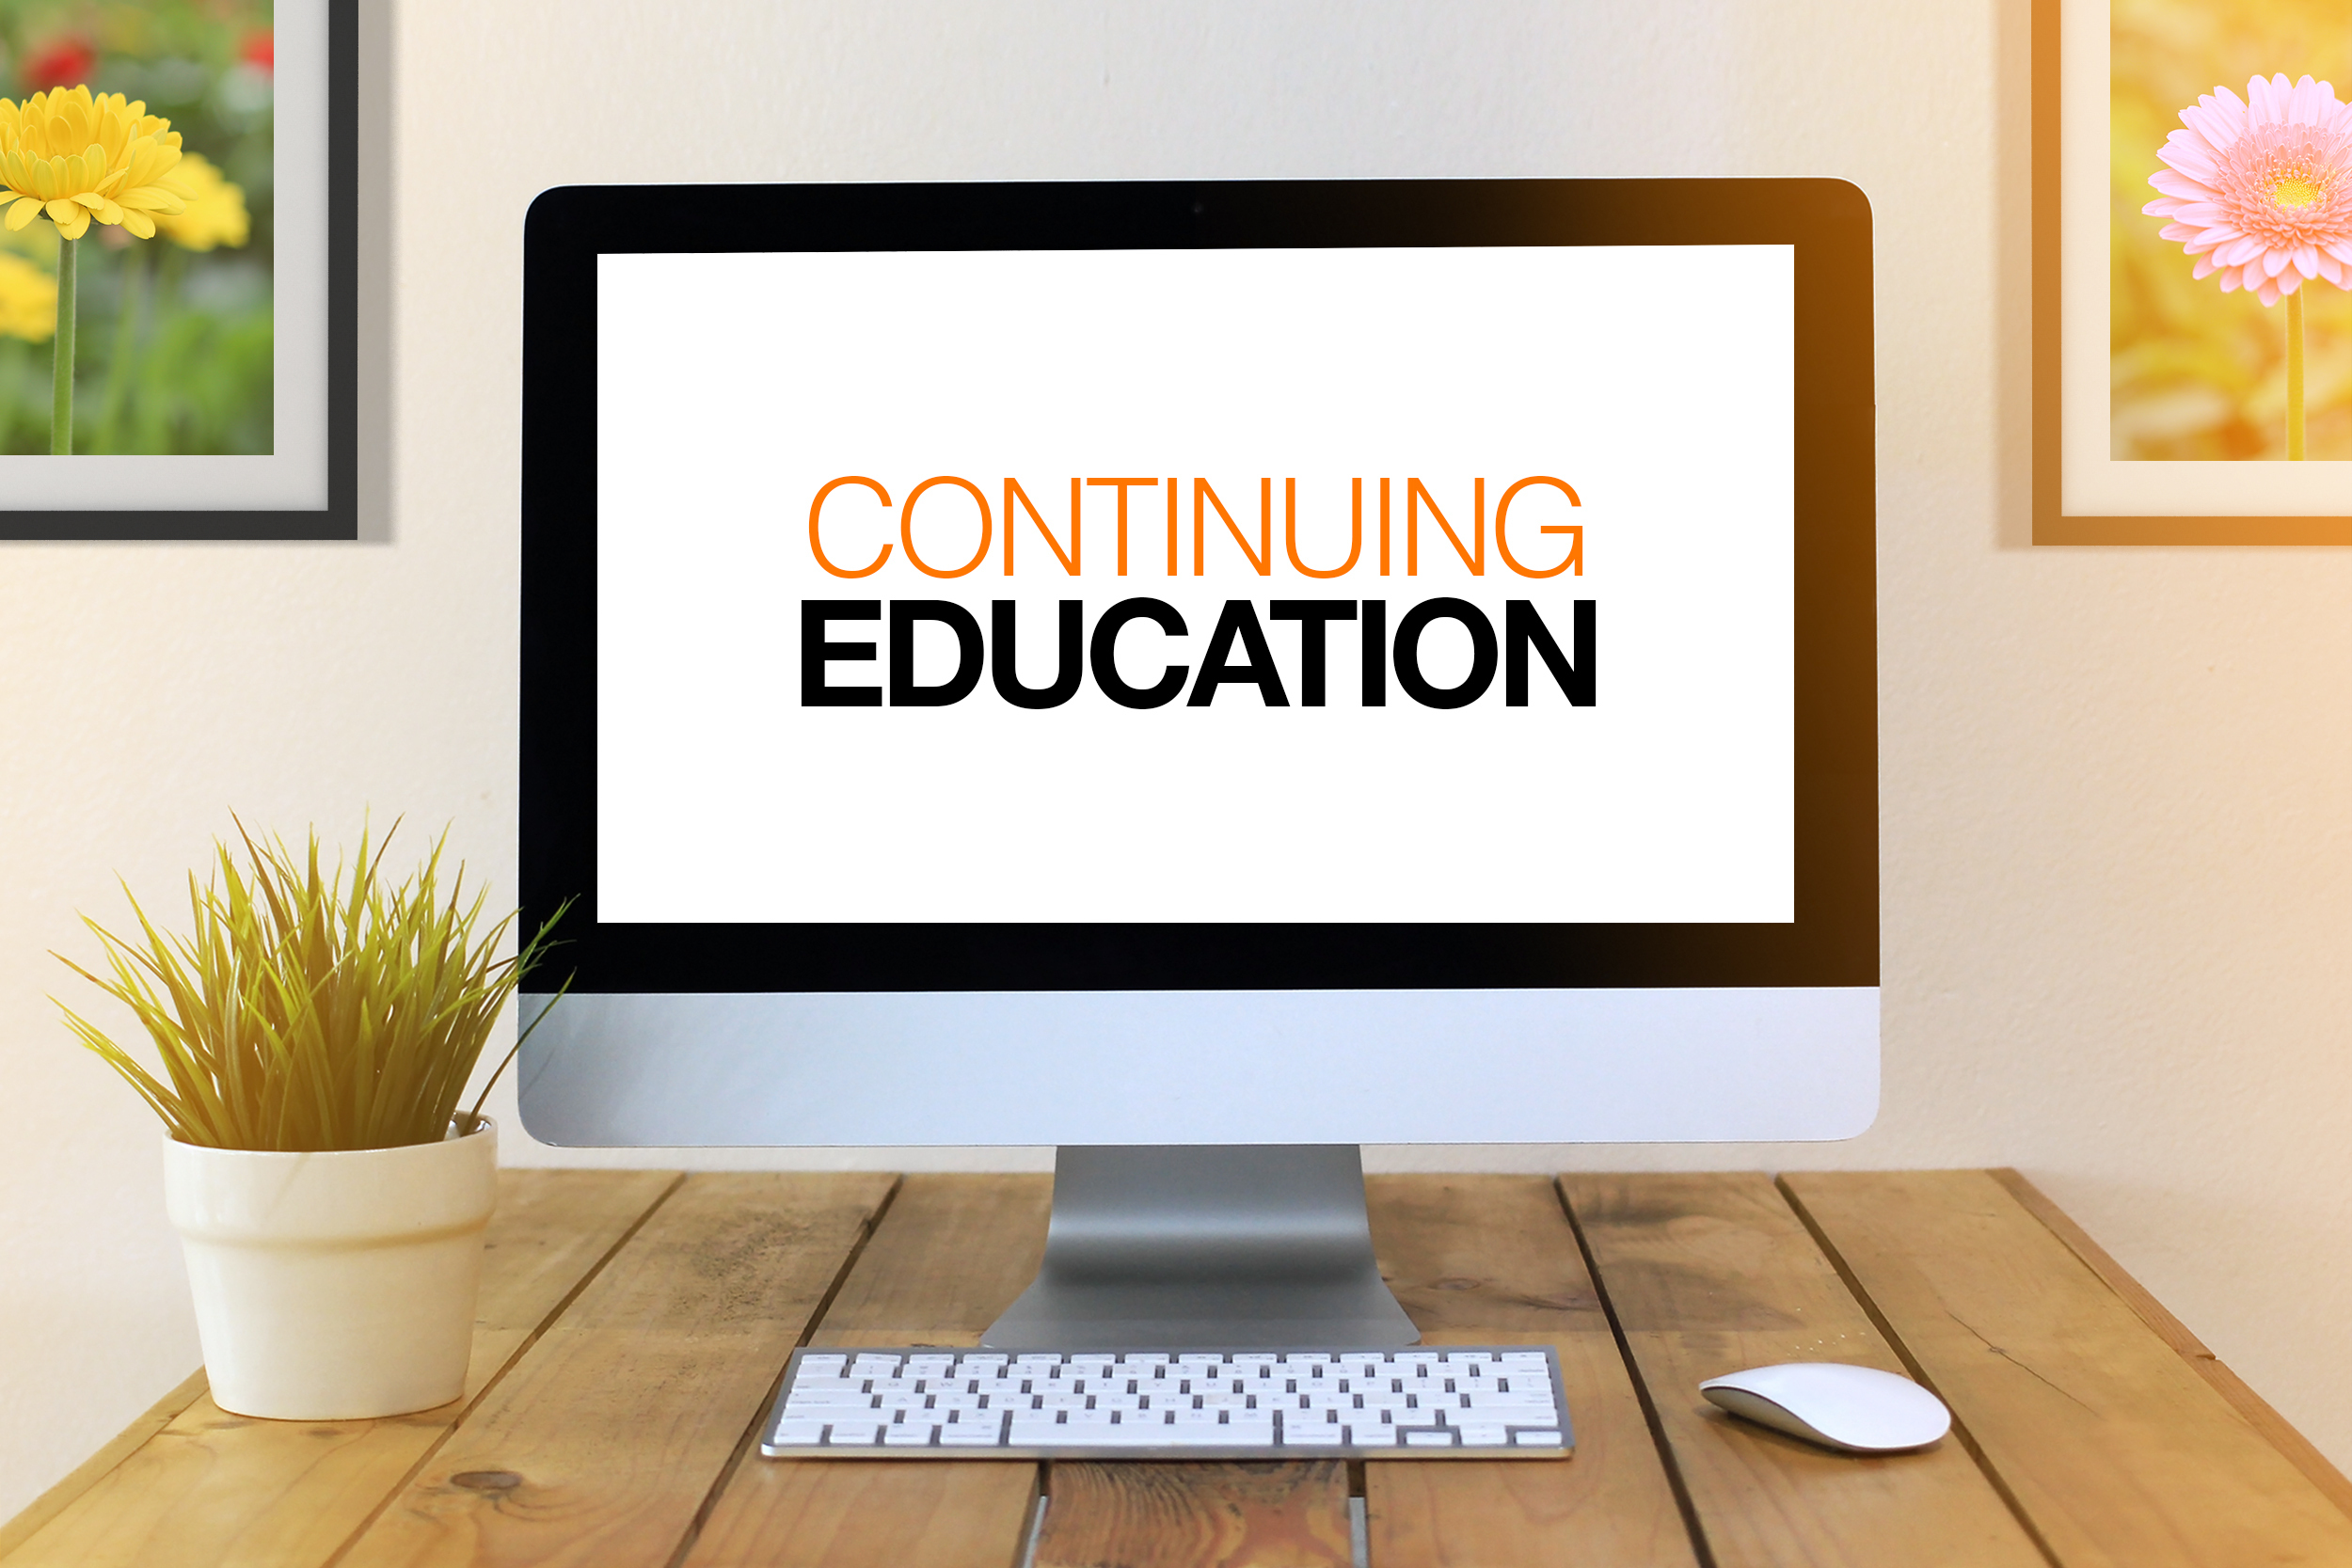 continuing education concept on monitor screen